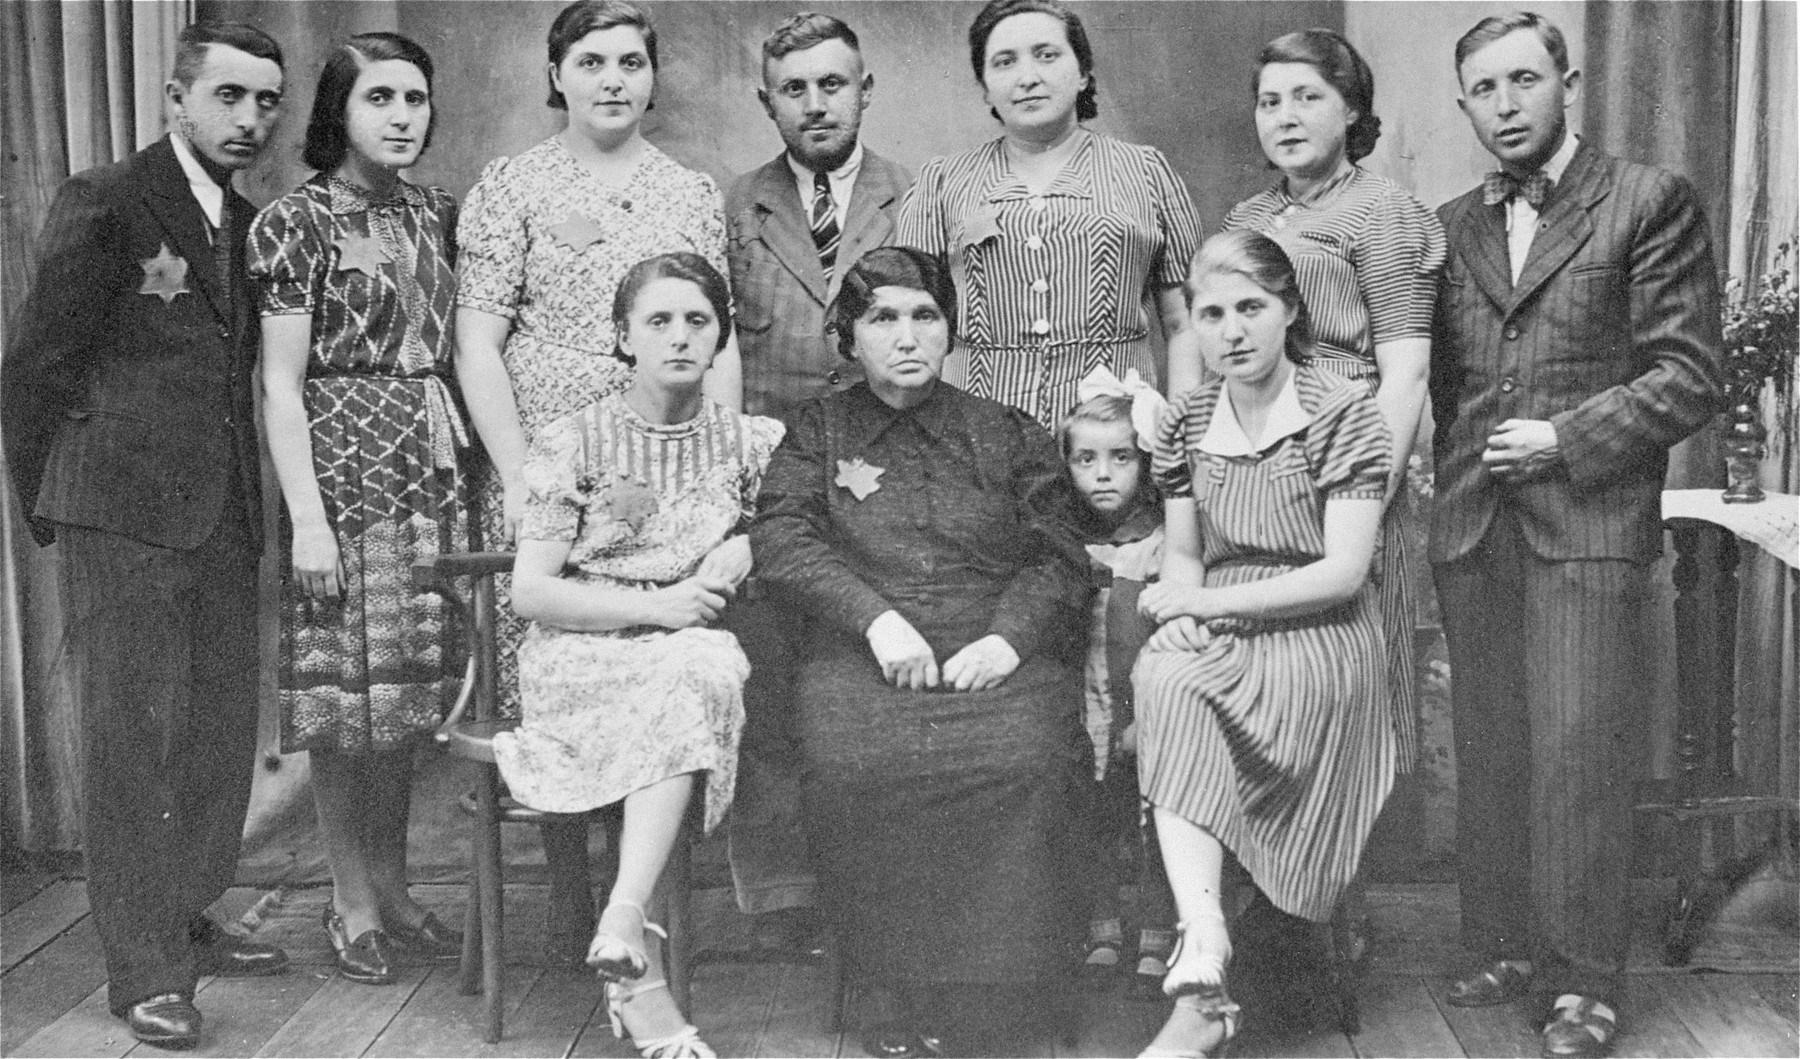 Portrait of the Klein family in the Zelow ghetto wearing Jewish stars.   Standing from left to right: Natan and his wife Rozia, Salka Frant, Hershel, Chana Baila Majer, Tzipa and Abram. Seated are: Bluma, and Lea-Feiga.